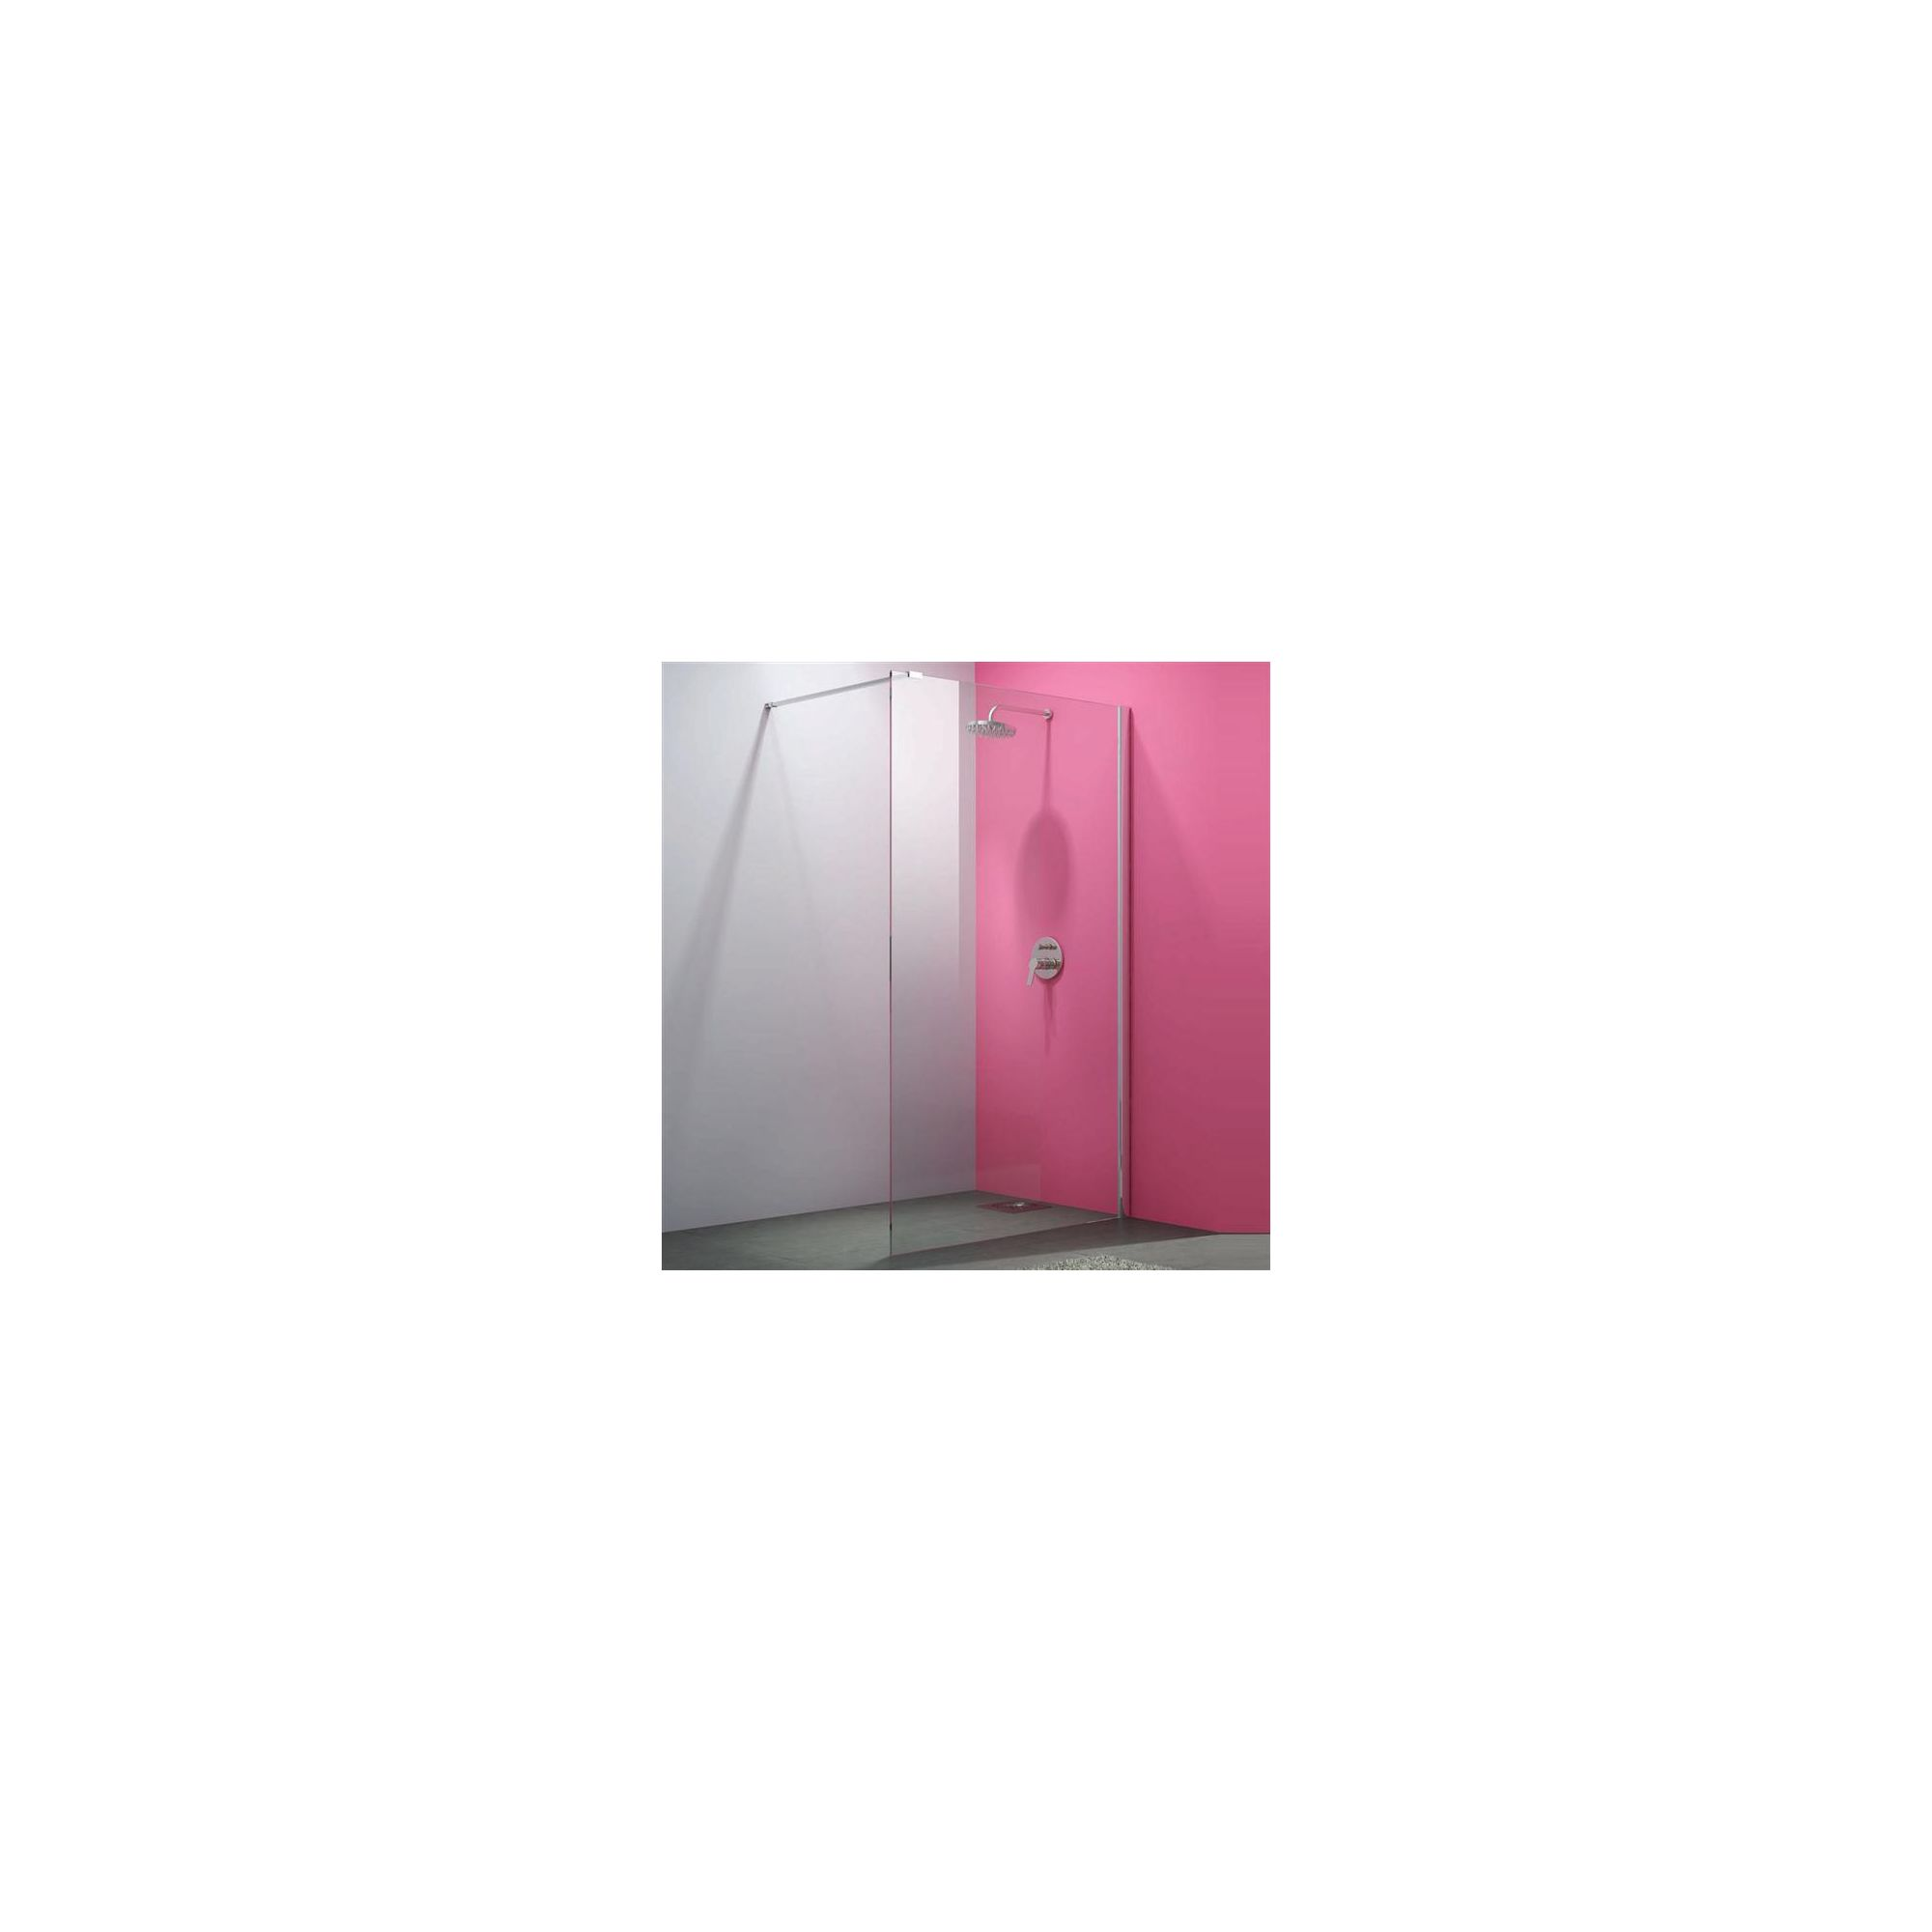 Merlyn Vivid Eight Wet Room Shower Enclosure, 1000mm x 800mm, Low Profile Tray, 8mm Glass at Tesco Direct